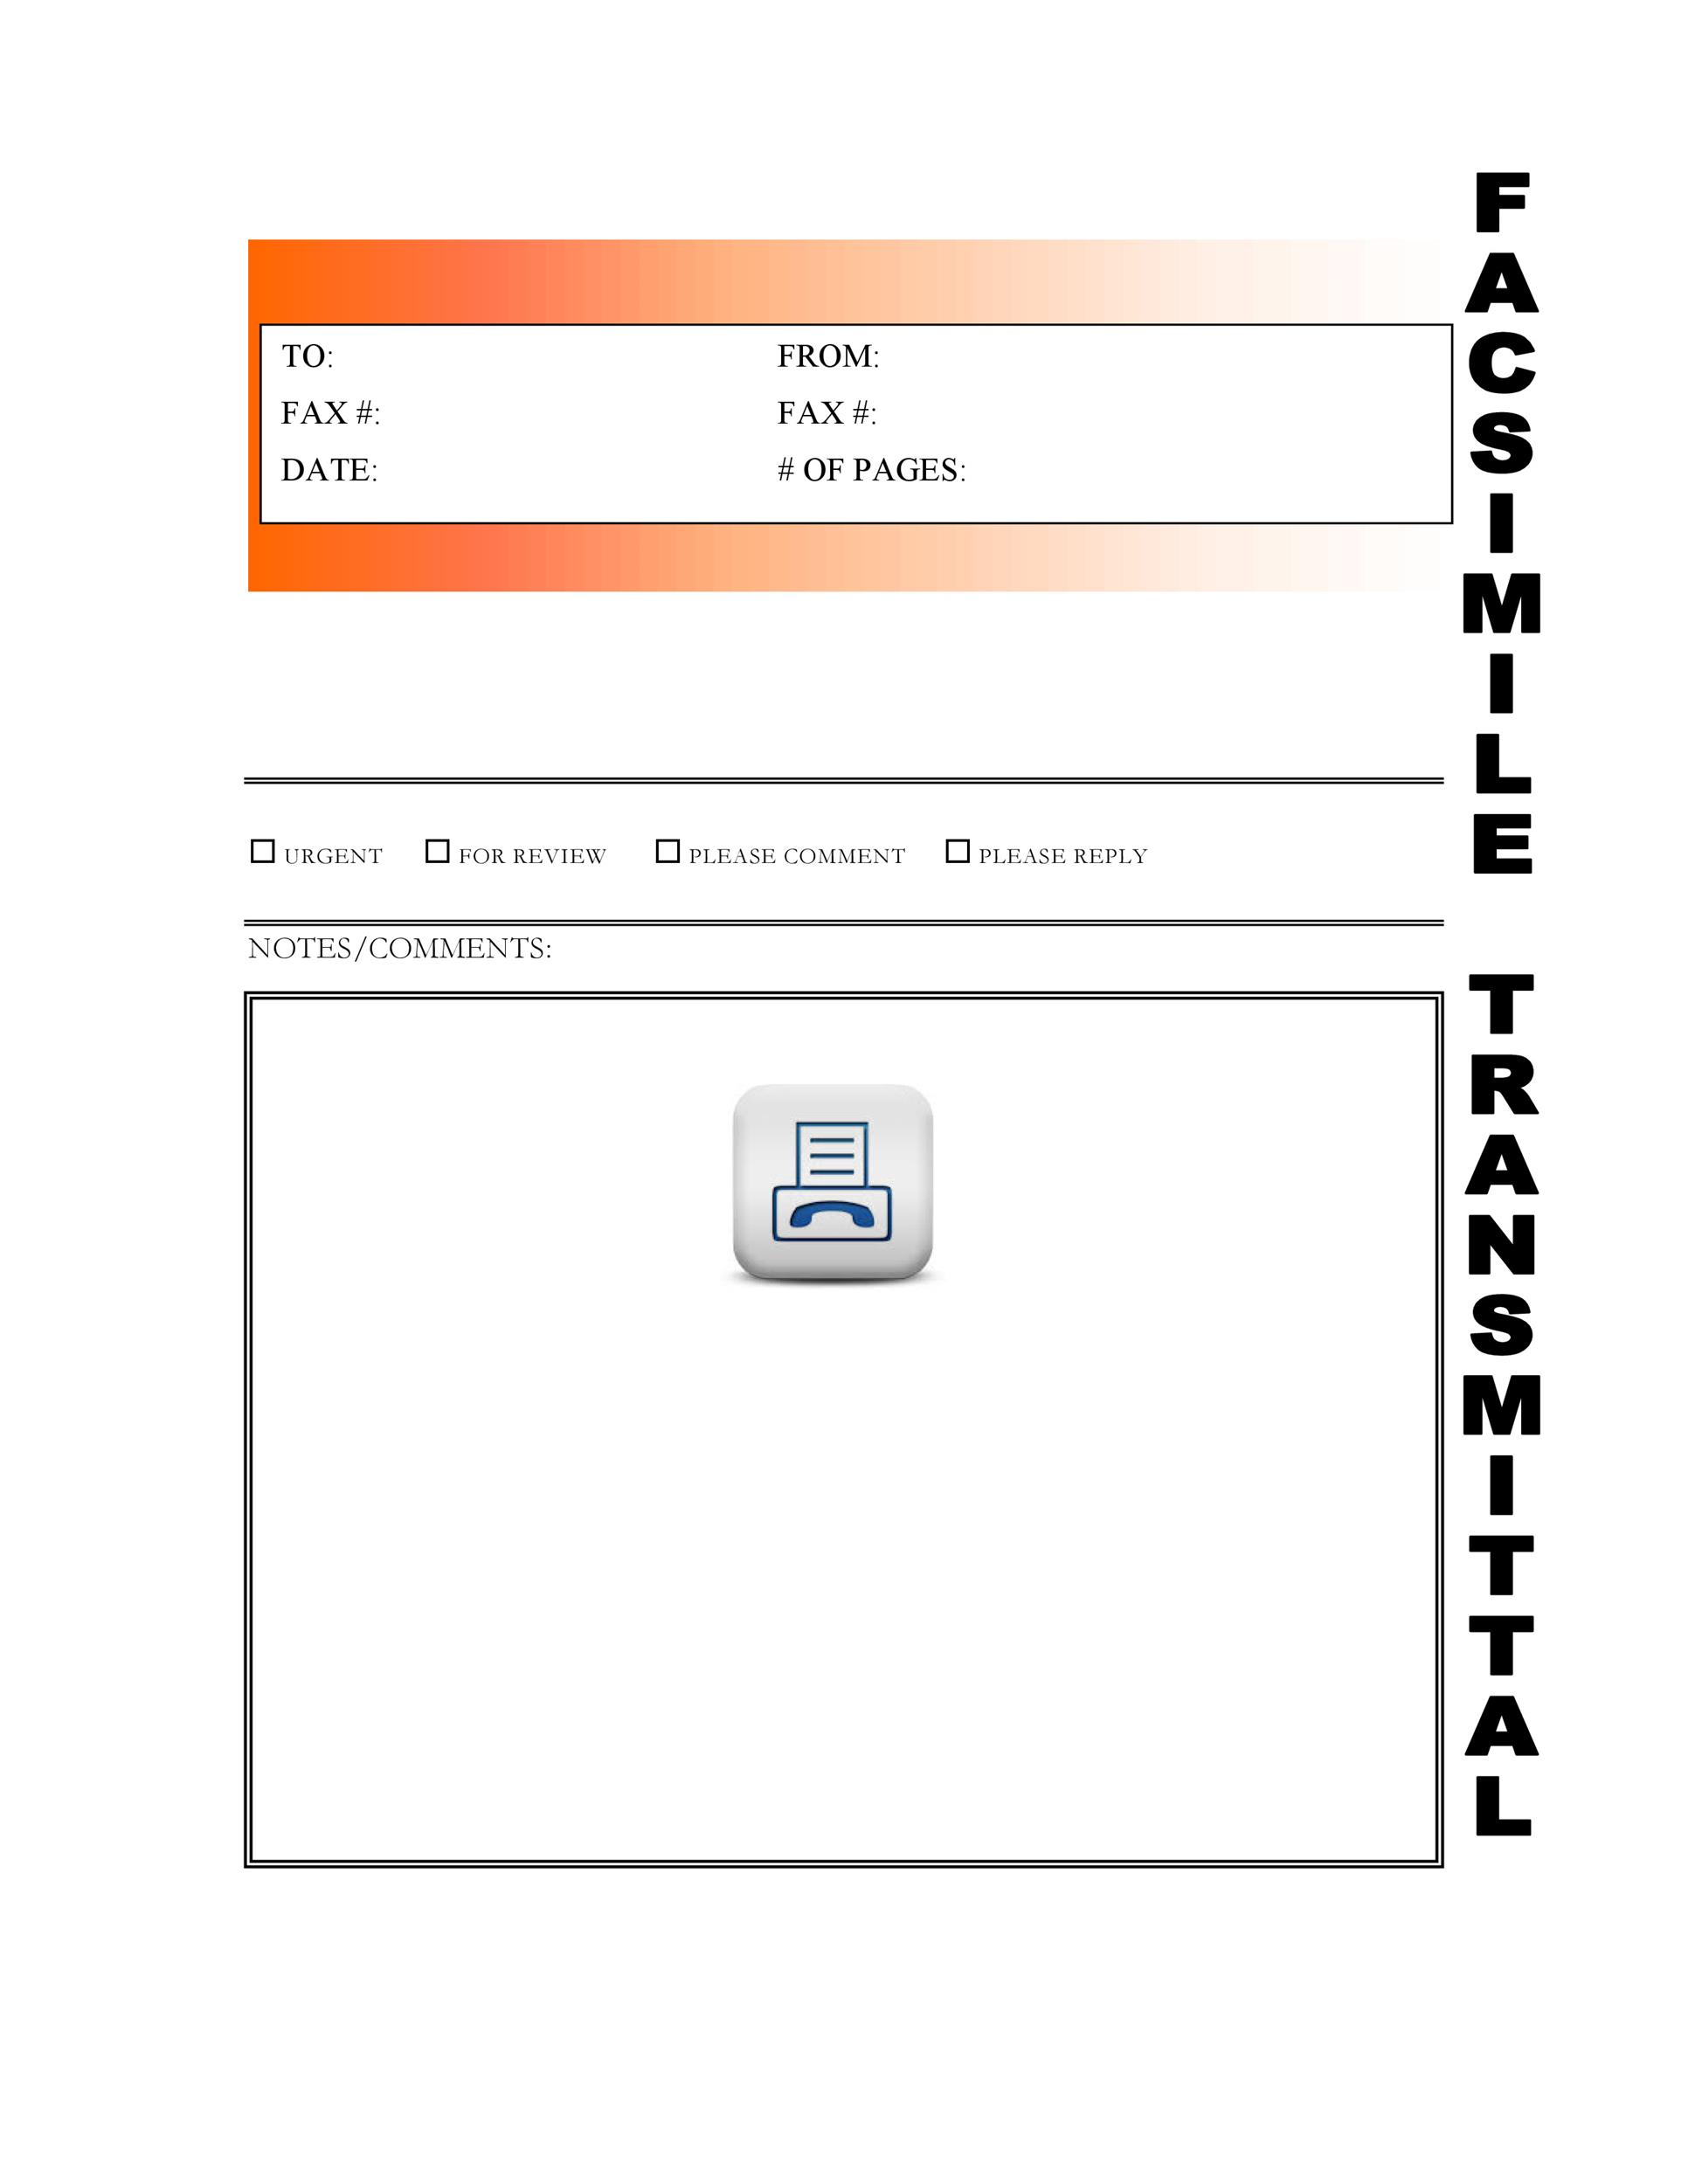 Printable Fax Cover Sheet Template 33  Free Cover Fax Sheet